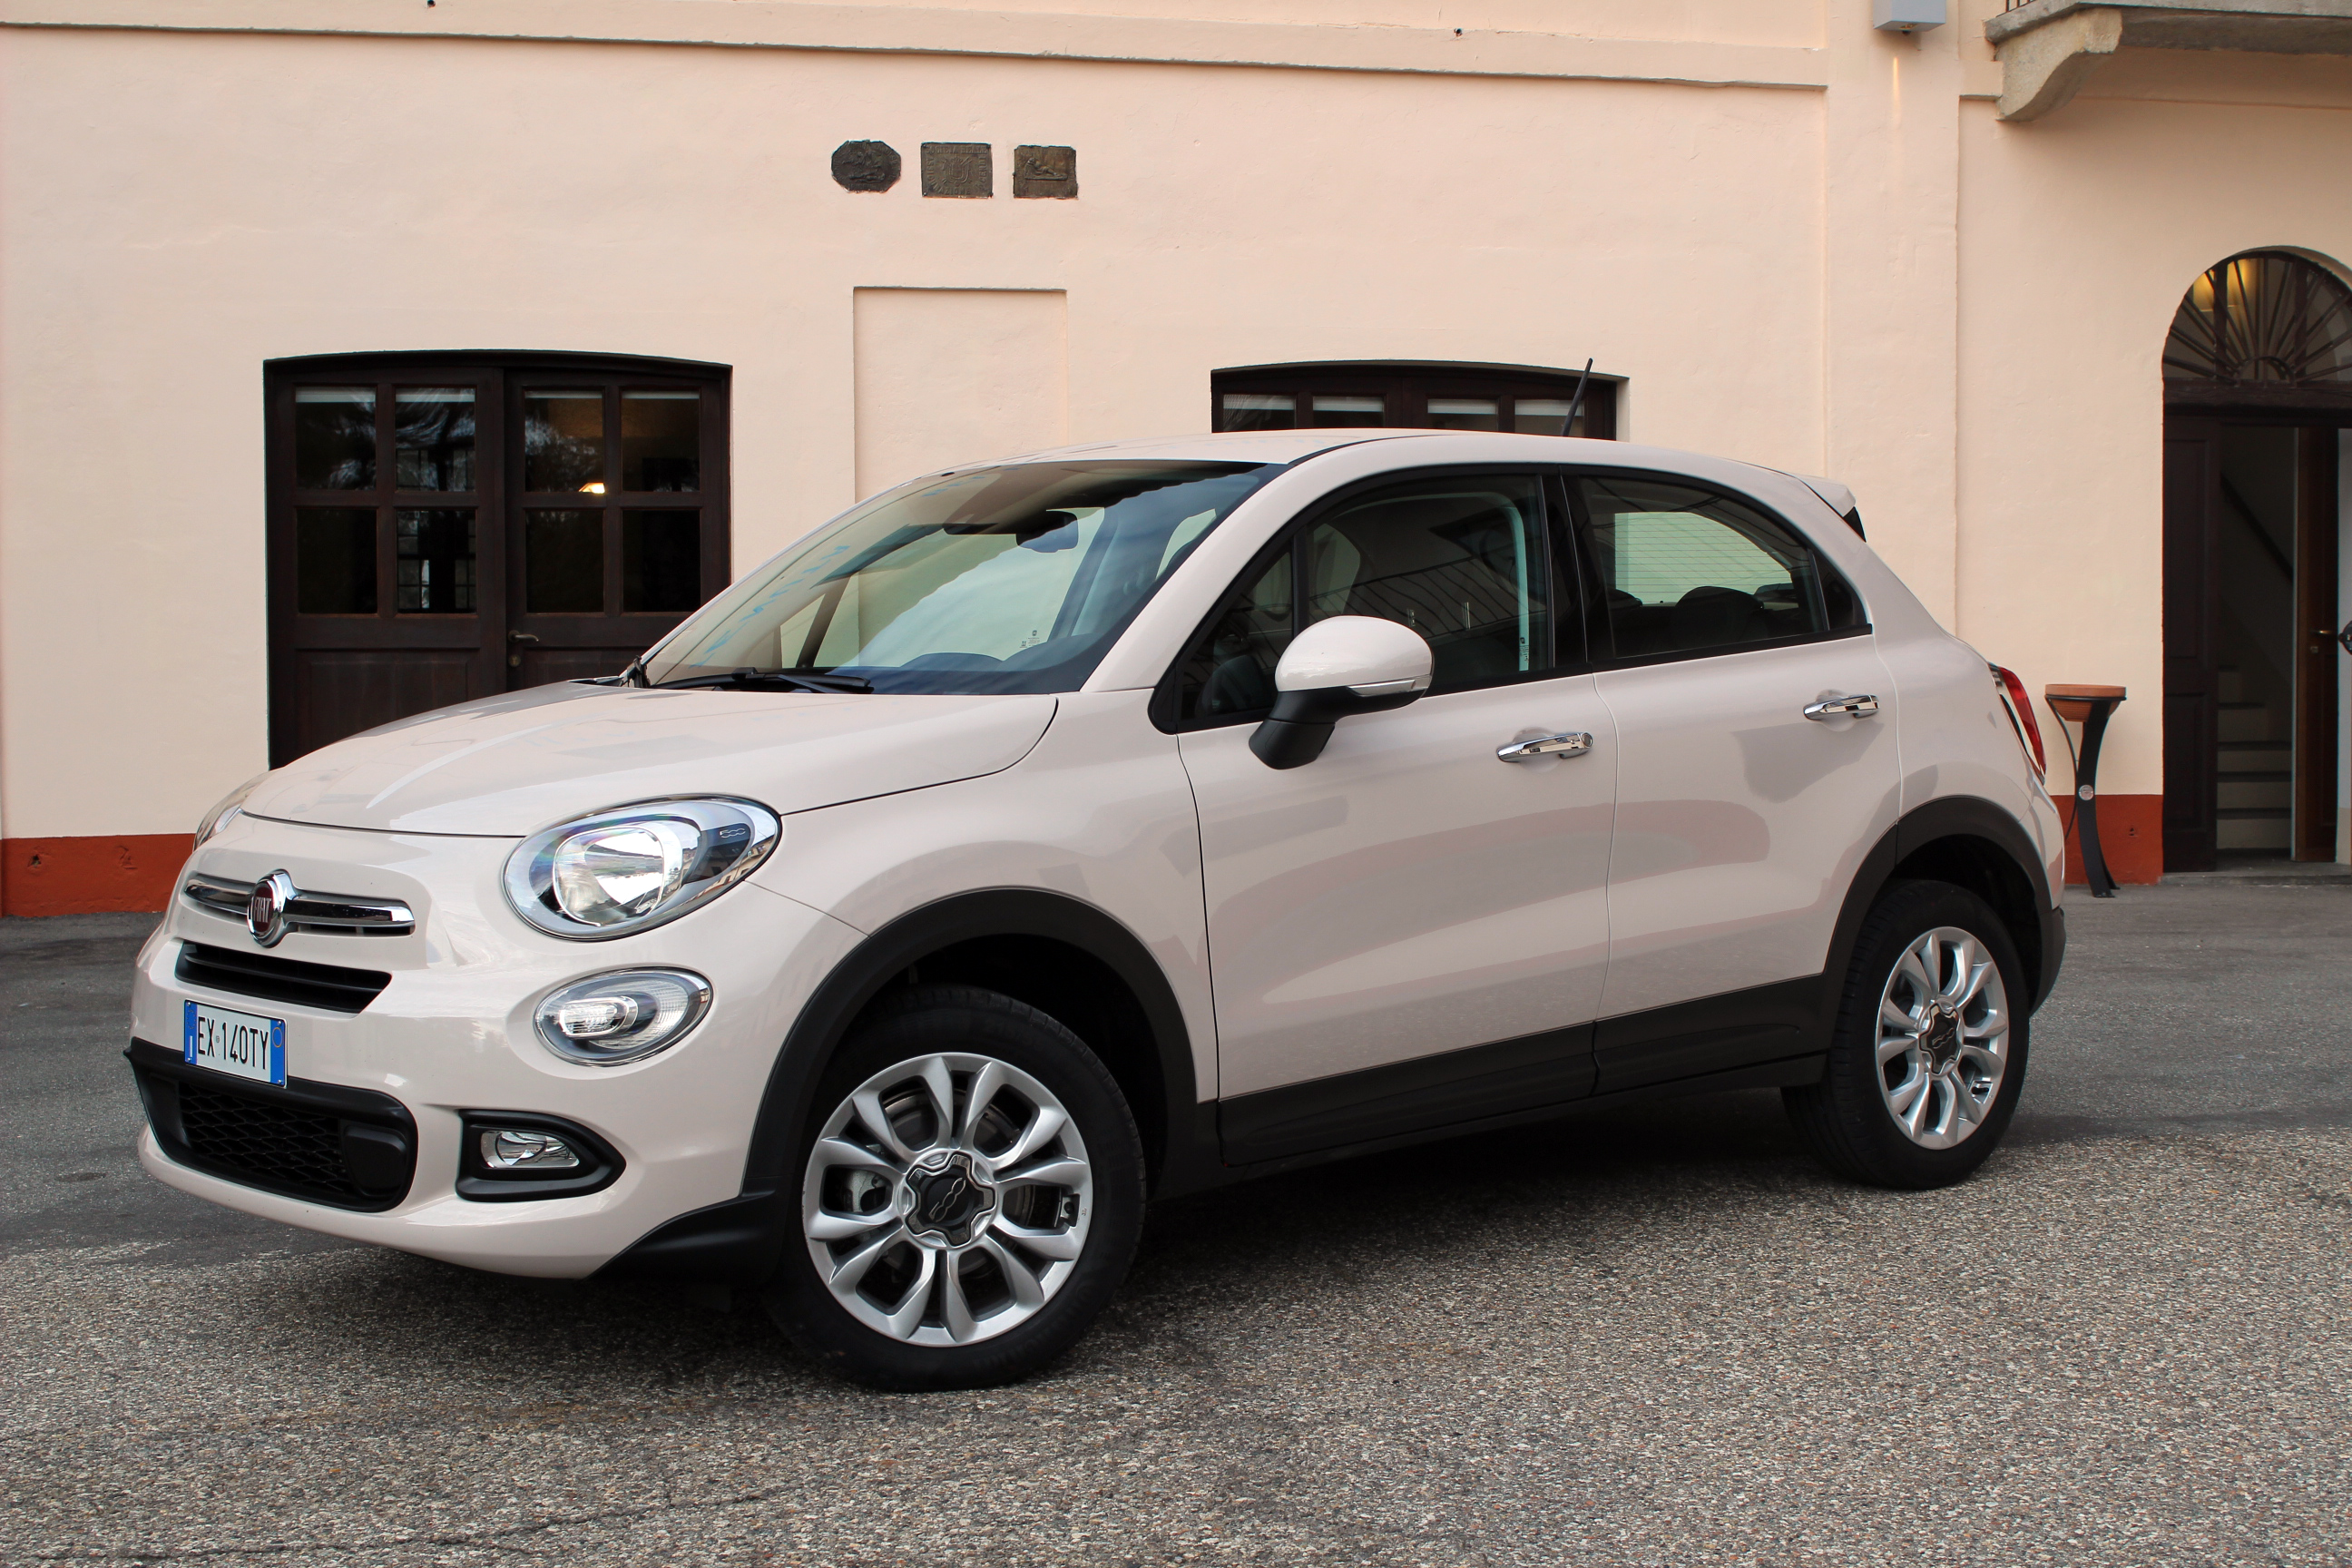 la fiat 500 x arrive en concession ren gat italien. Black Bedroom Furniture Sets. Home Design Ideas